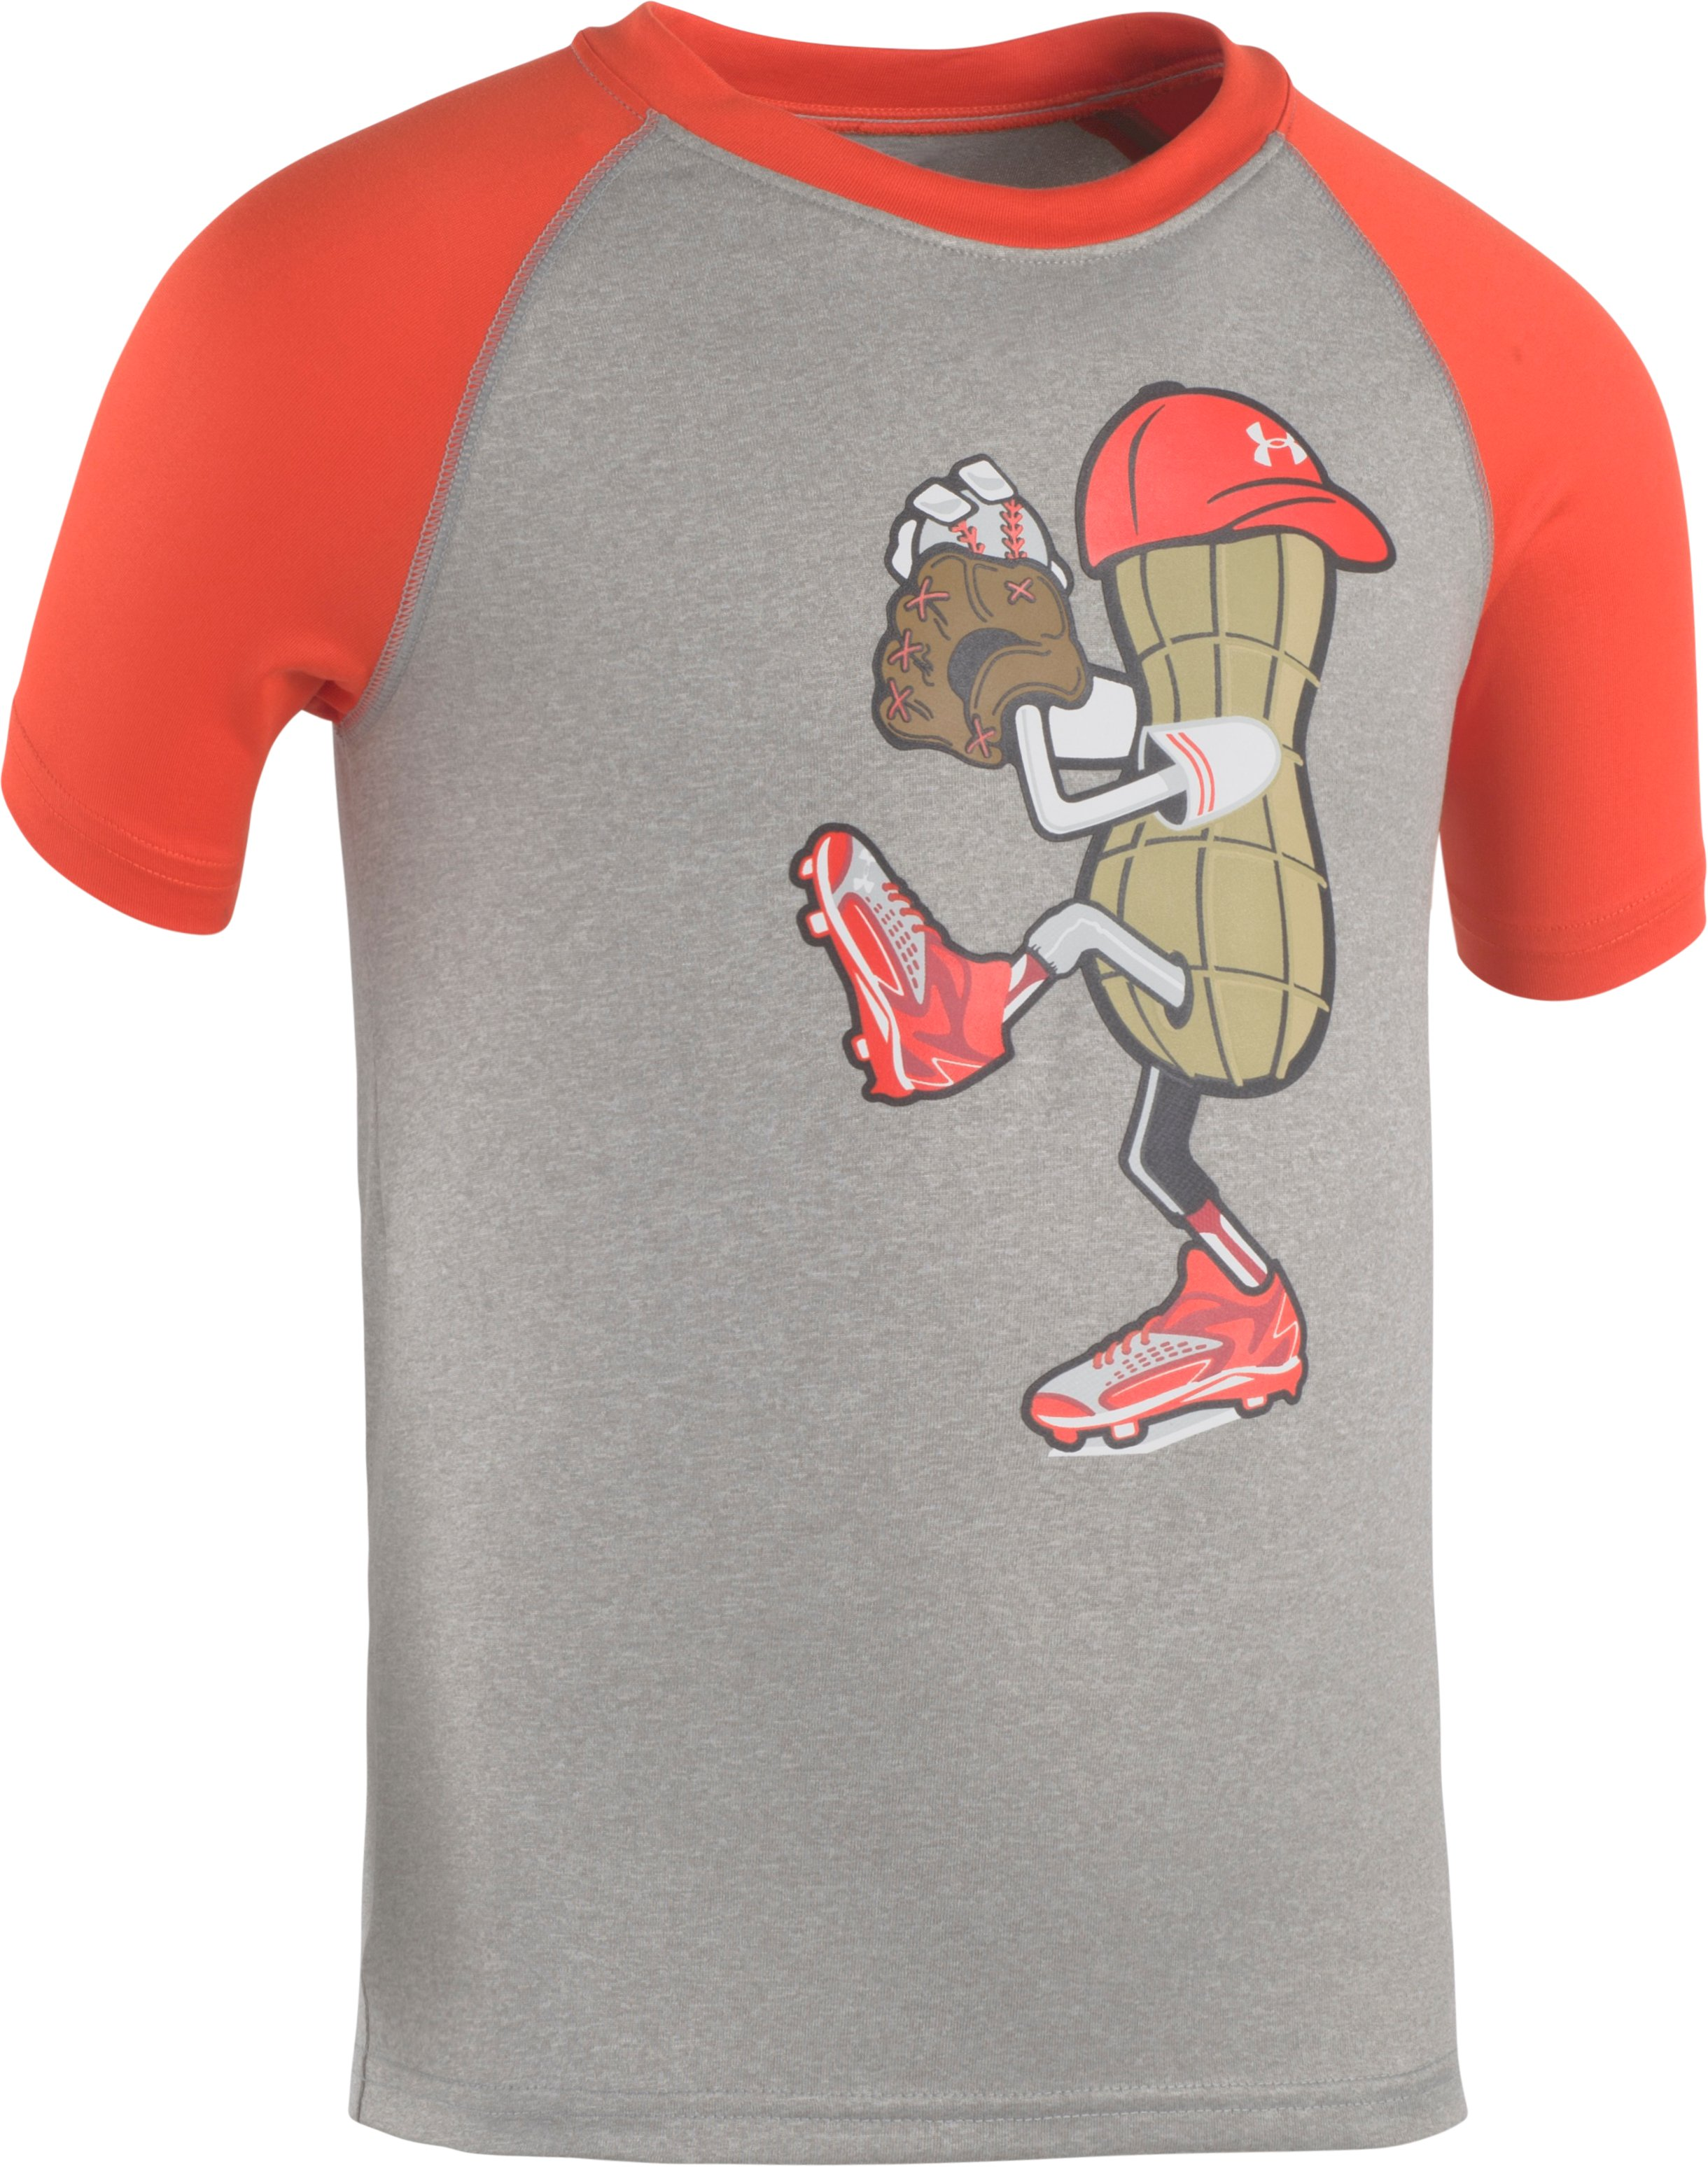 Boys' Infant UA Peanut Pitcher Short Sleeve Shirt, True Gray Heather